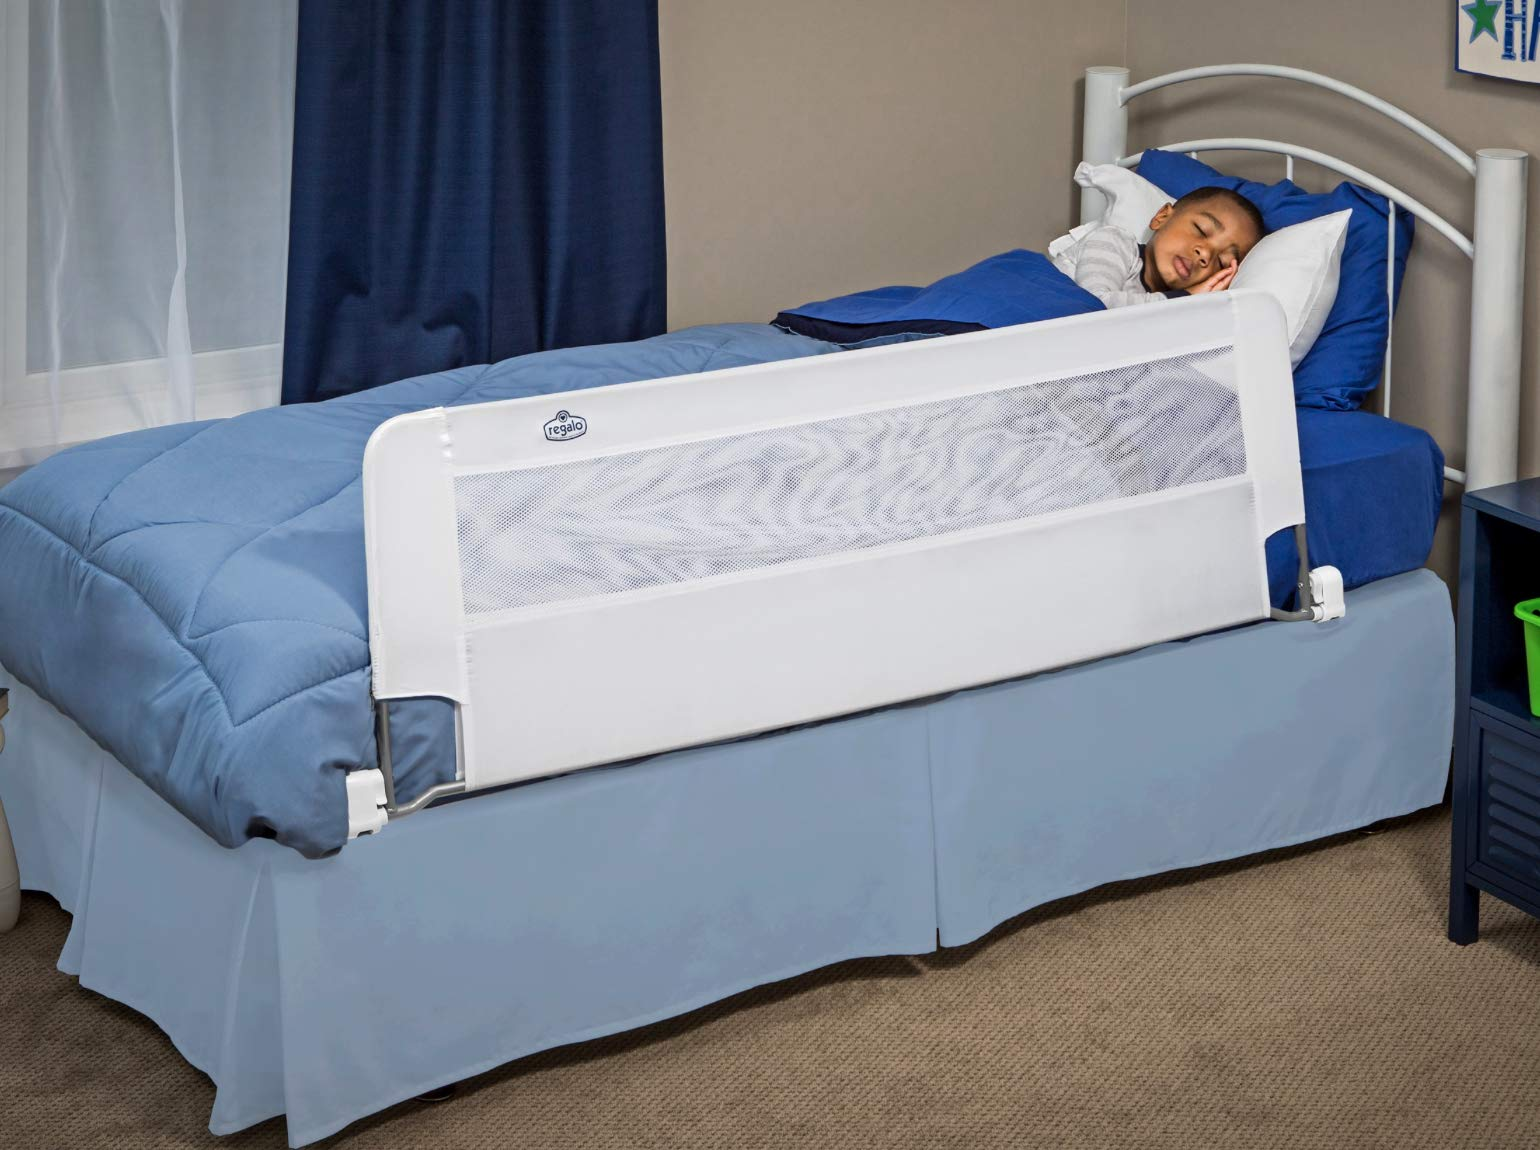 Regalo Swing Down 54-Inch Extra Long Bed Rail Guard, with Reinforced Anchor Safety System by Regalo